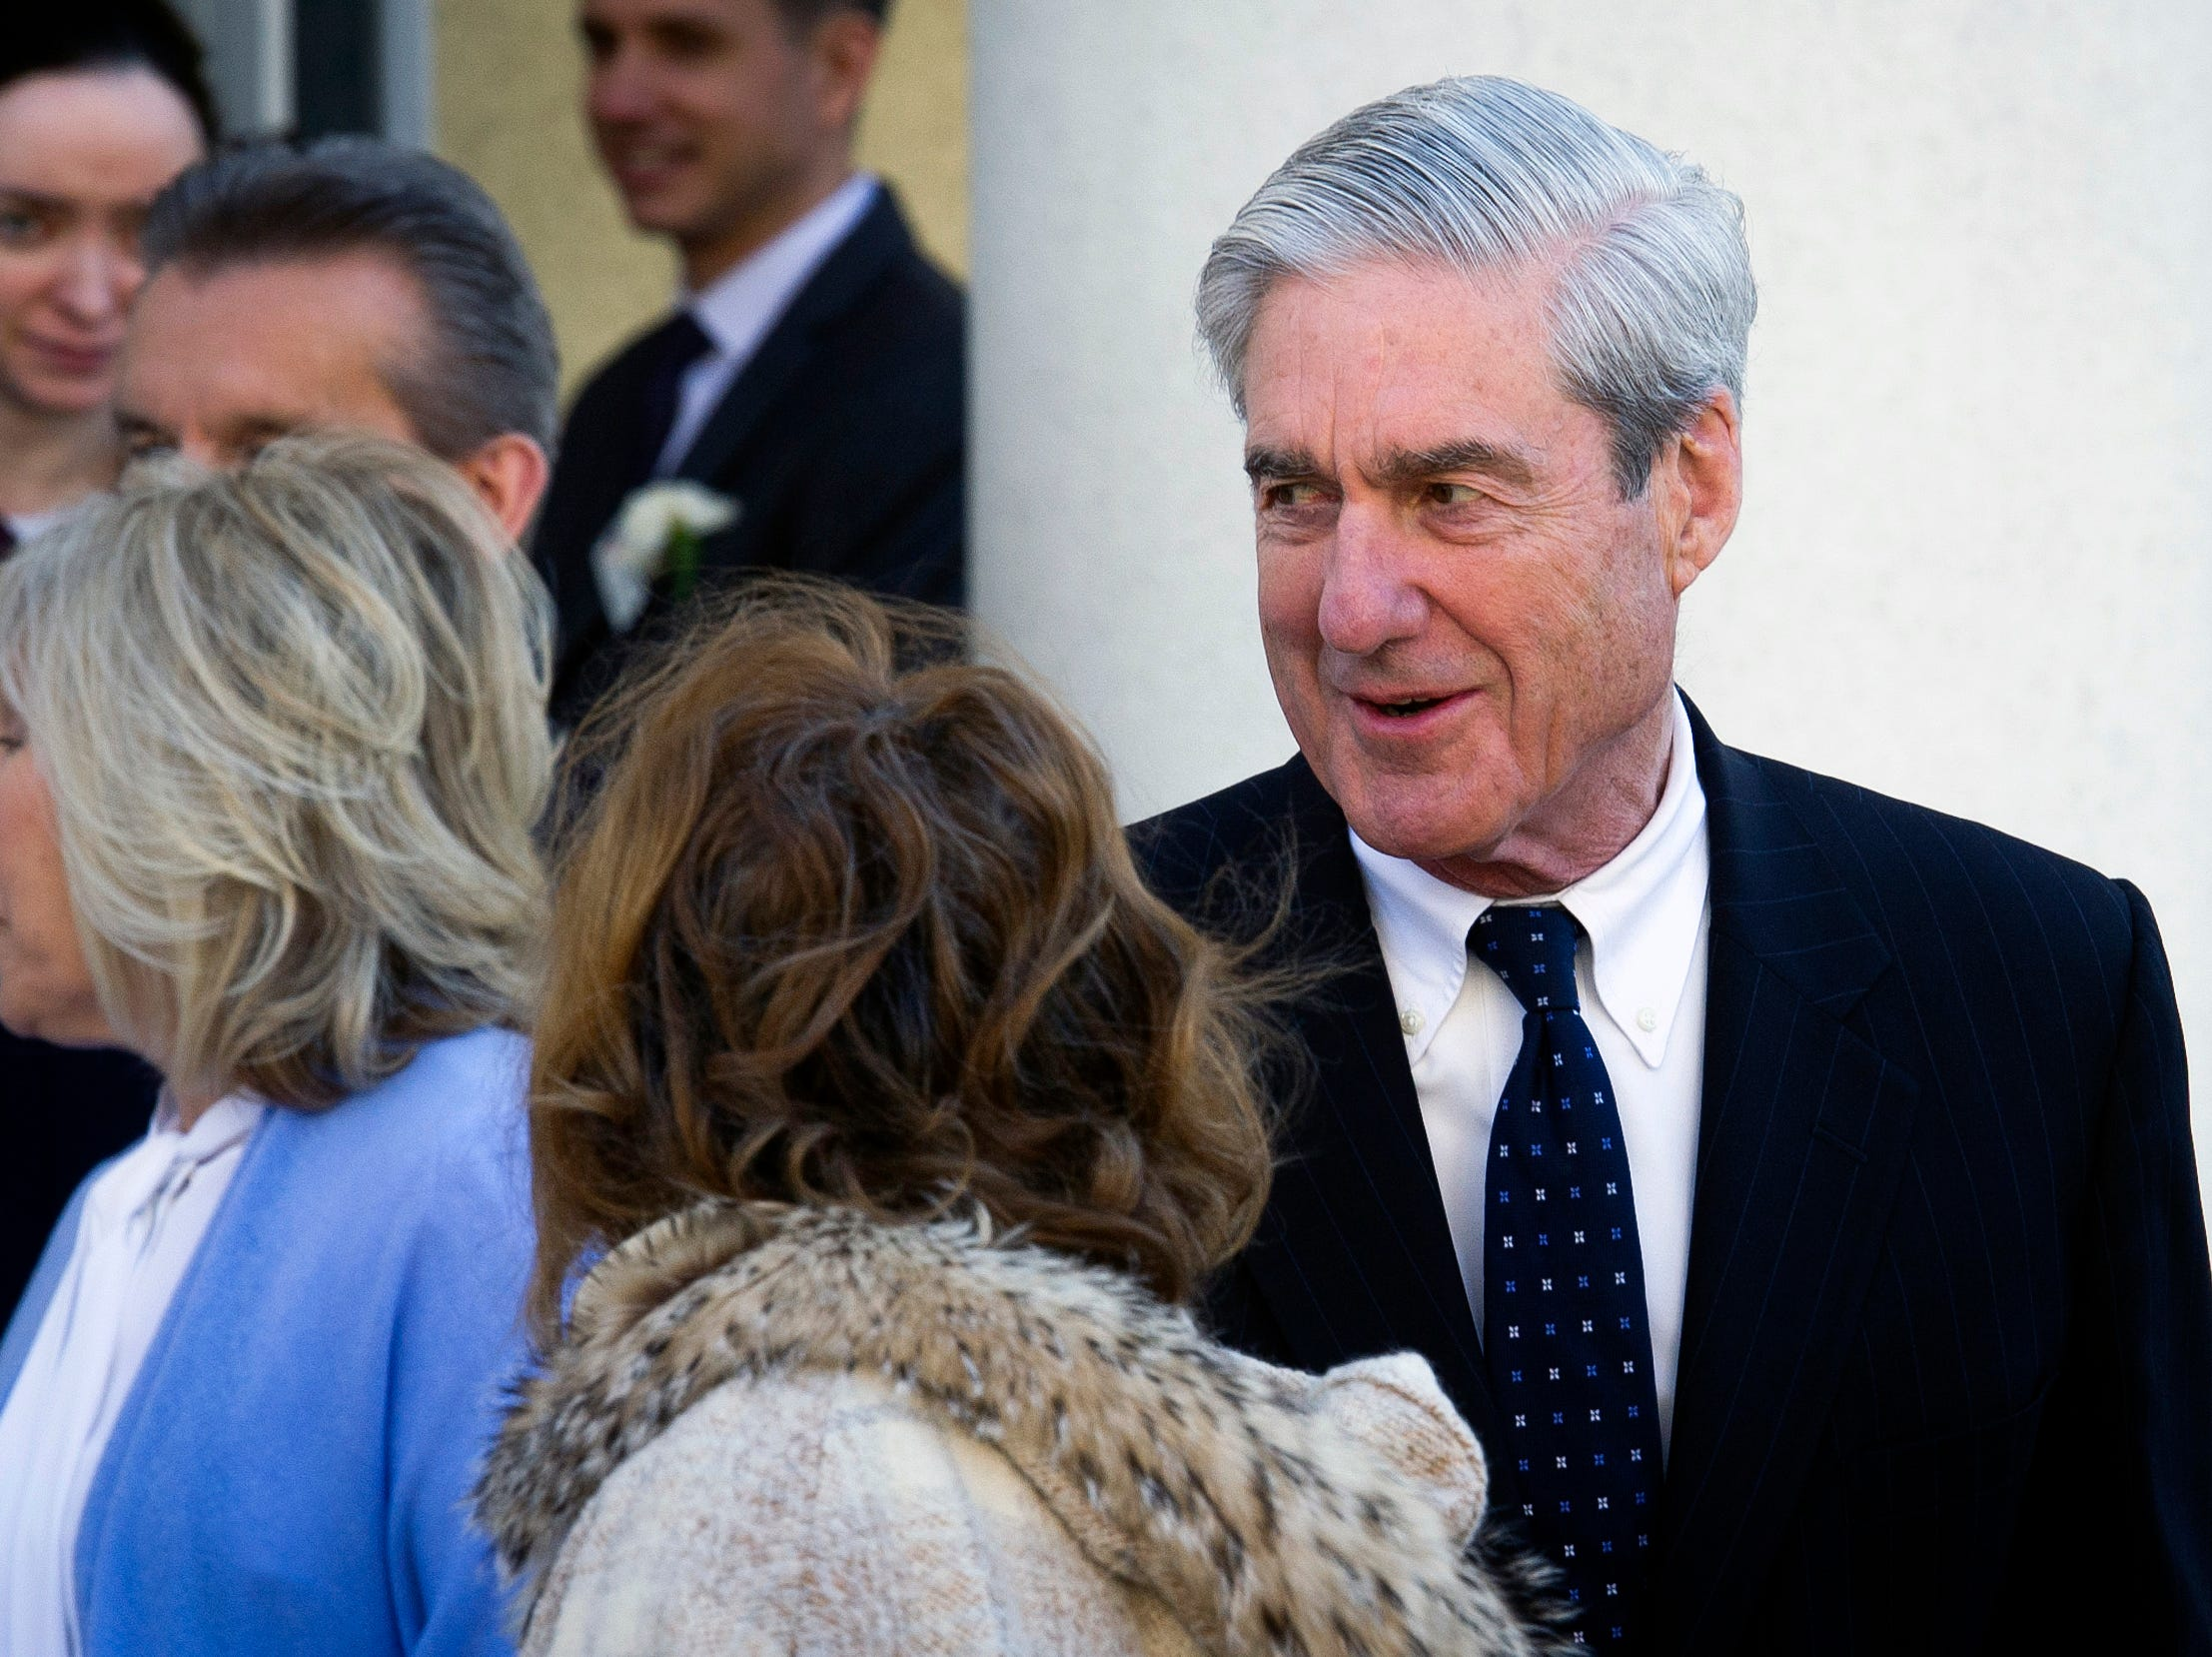 Robert Mueller departs St. John's Episcopal Church, across from the White House, after attending services, in Washington on March 24, 2019.